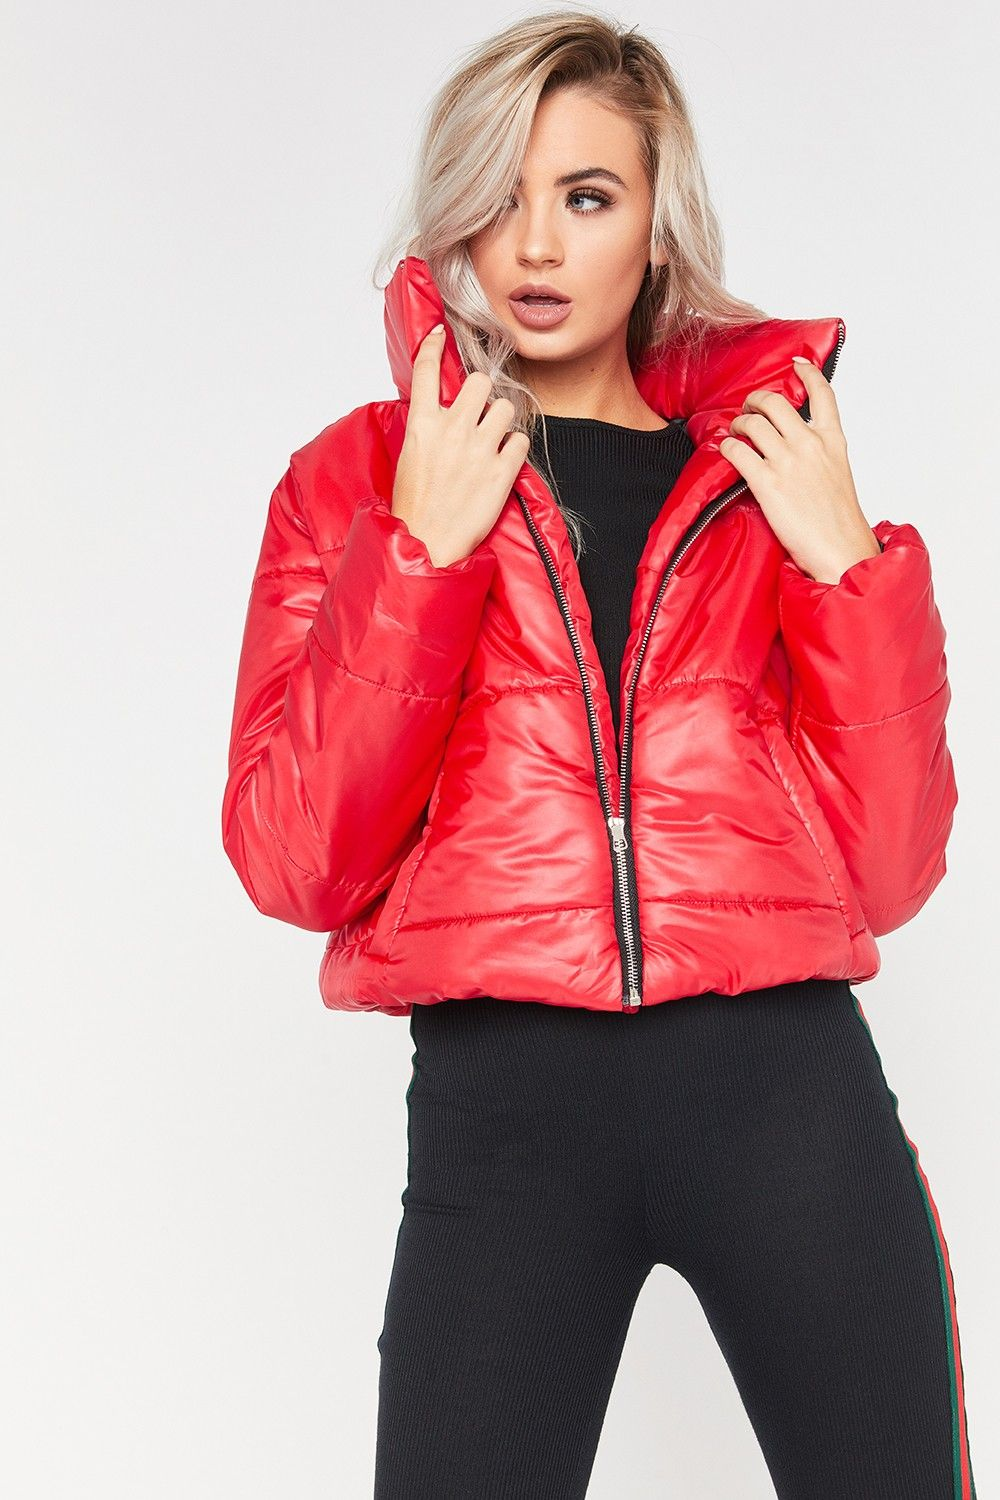 Ruby Red Cropped Puffer Jacket Puffer Jacket Women Red Puffer Jacket Puffer Coat Style [ 1500 x 1000 Pixel ]